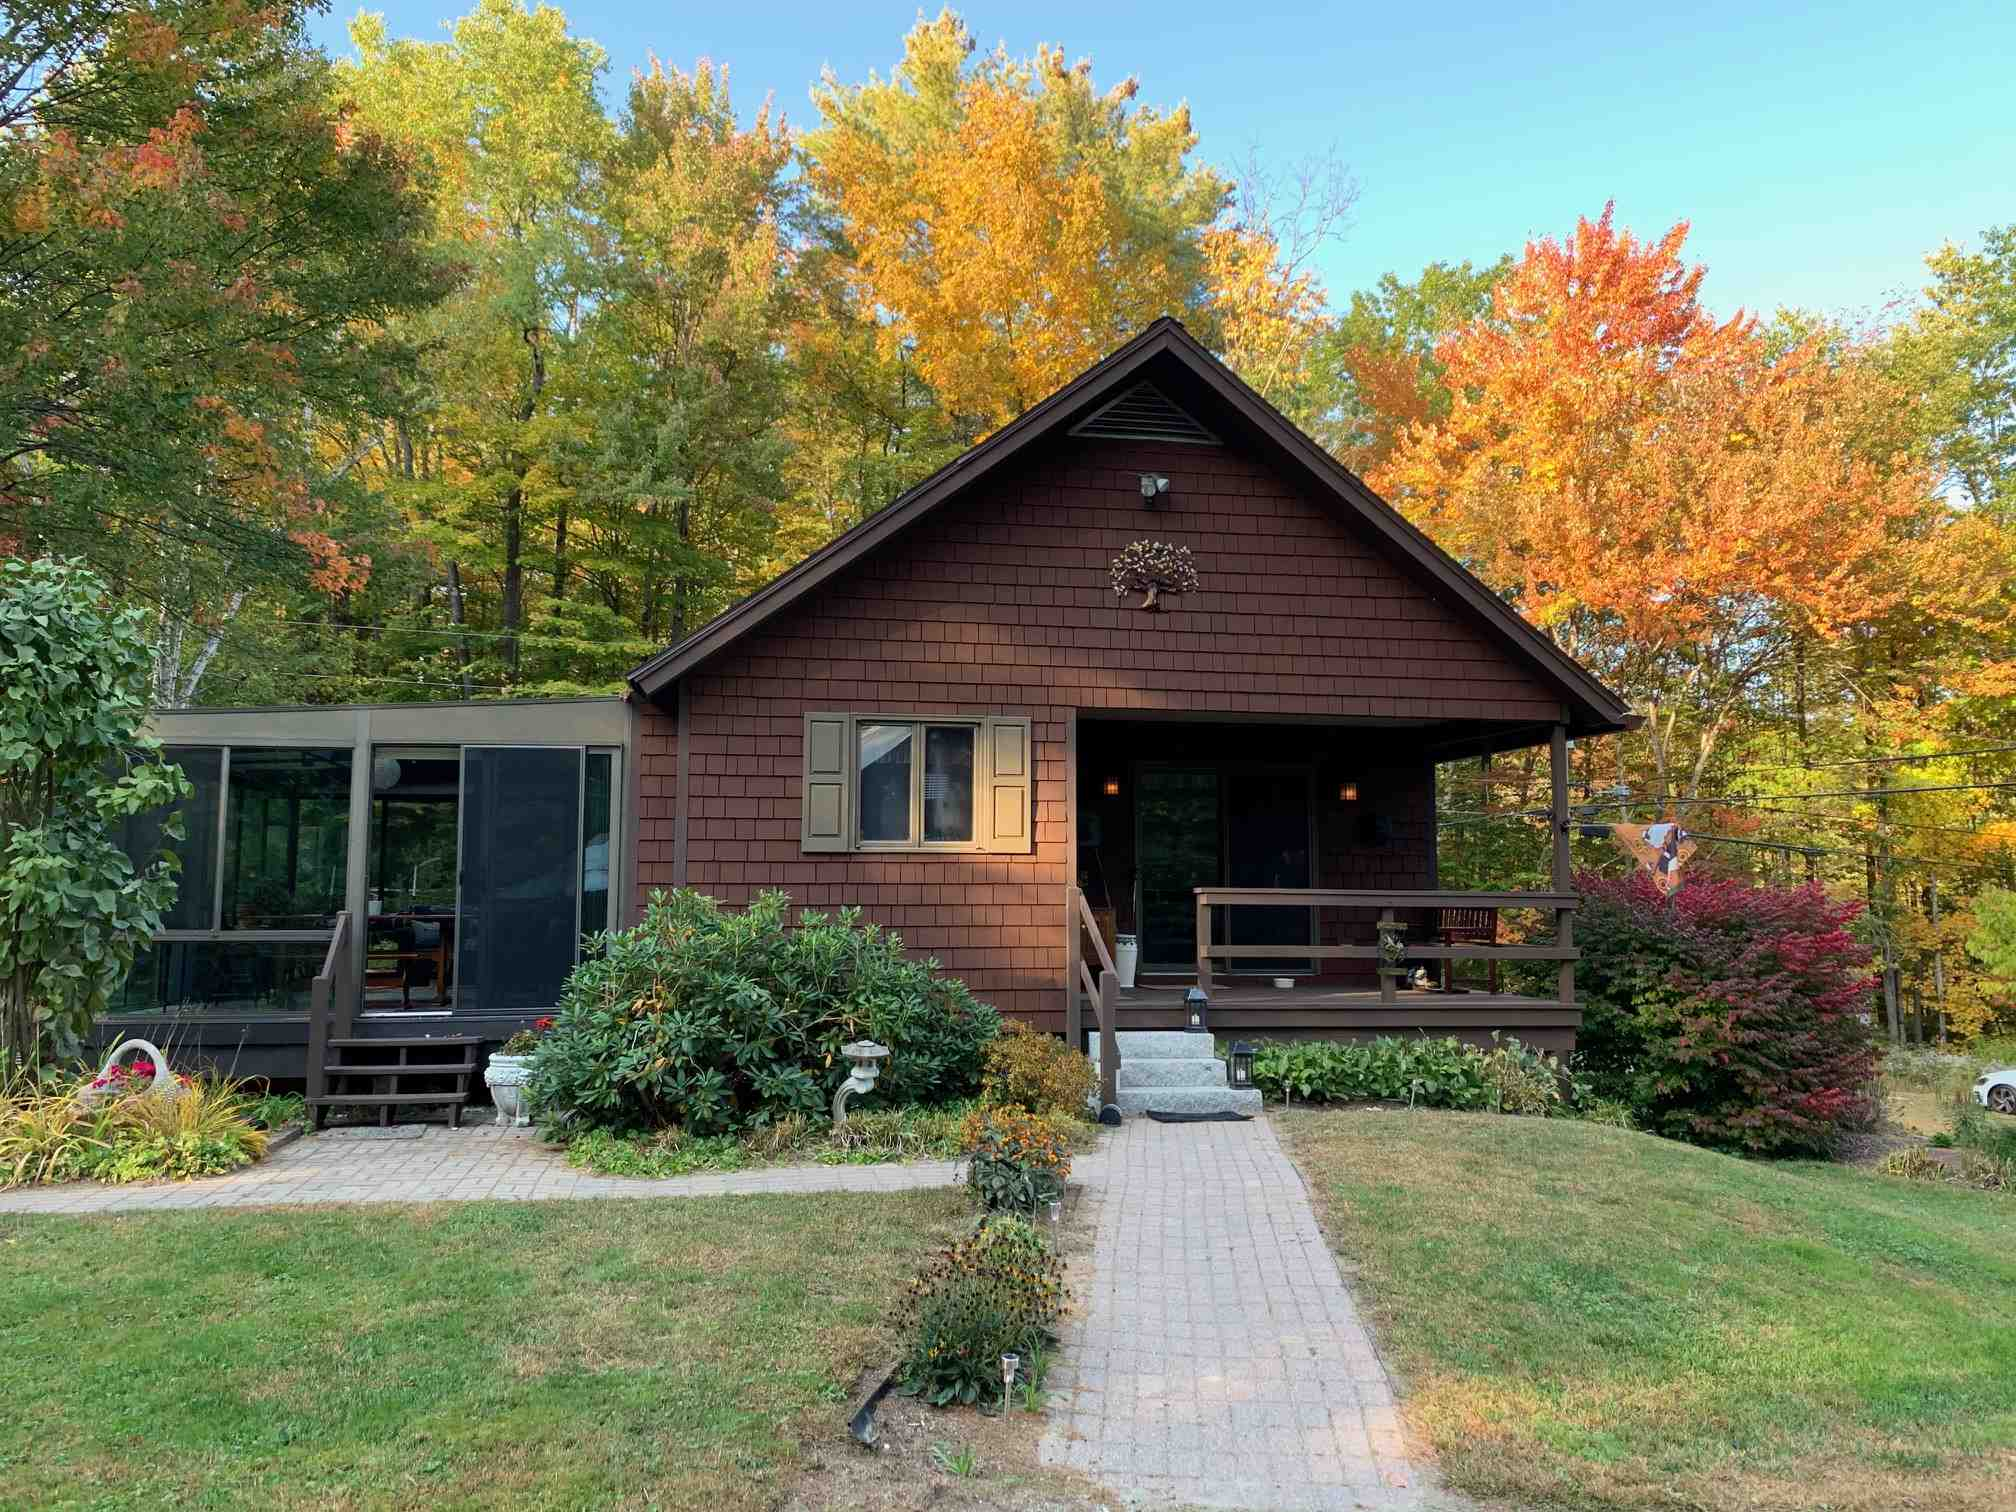 image of Springfield VT Home | sq.ft. 3776